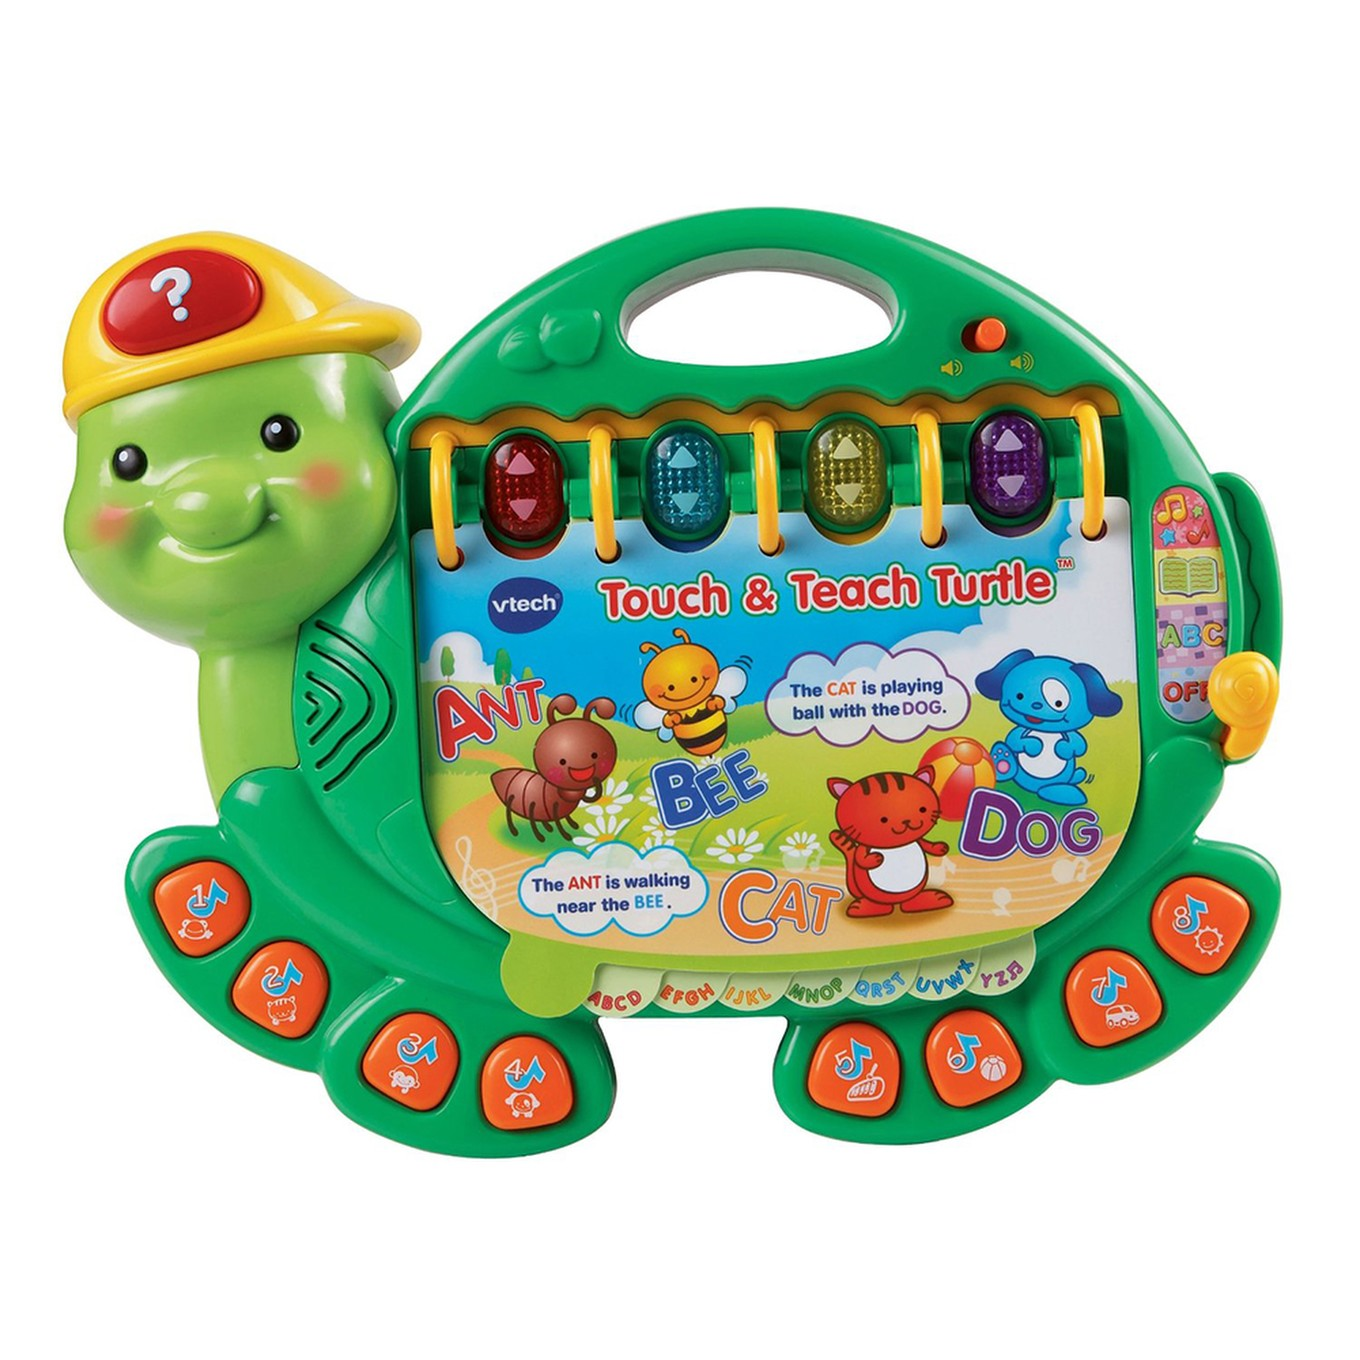 Touch Amp Teach Turtle Toddler Learning Toy Vtechkids Com